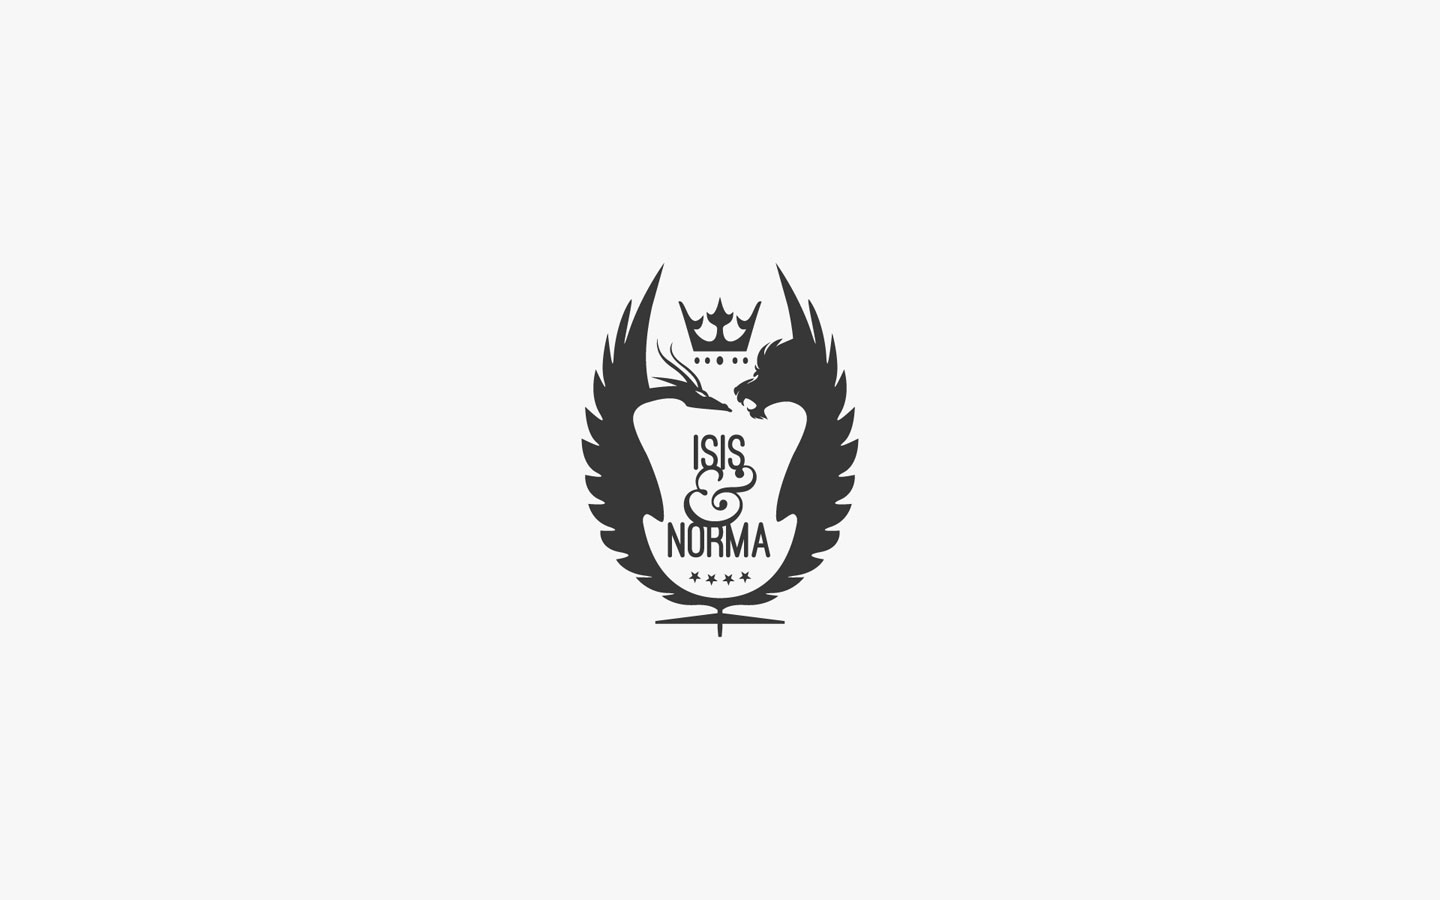 Isis and Norma, Interior Designer Logo Design